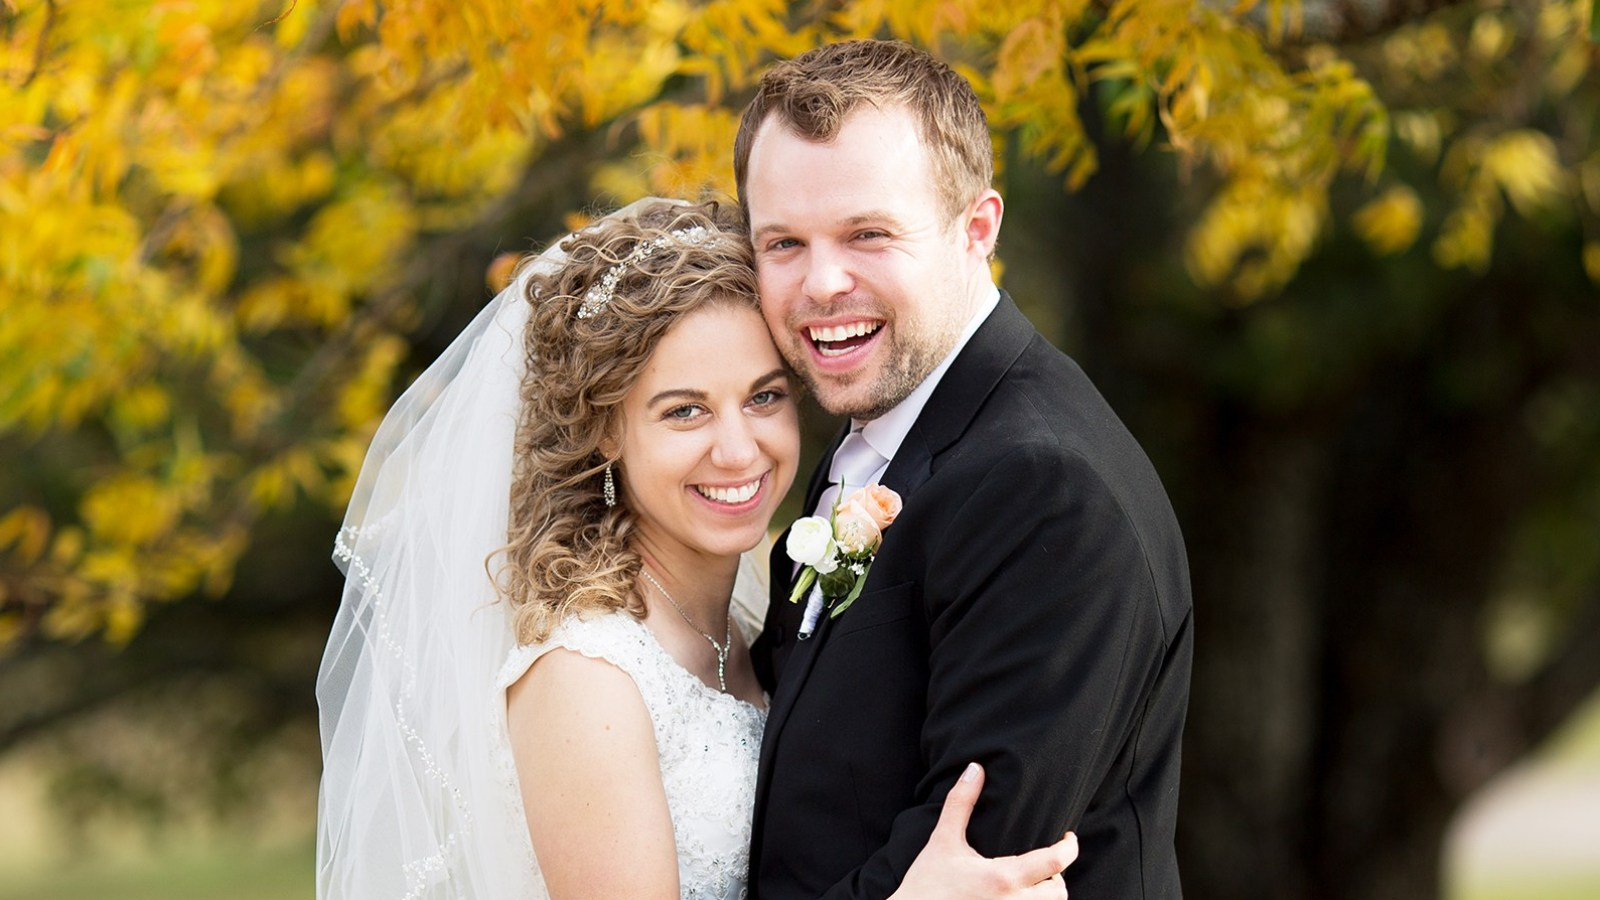 Counting On John David Duggar And Abbie Grace Burnett Celebrate 5 Month Anniversary, Where Is The Baby Announcement_